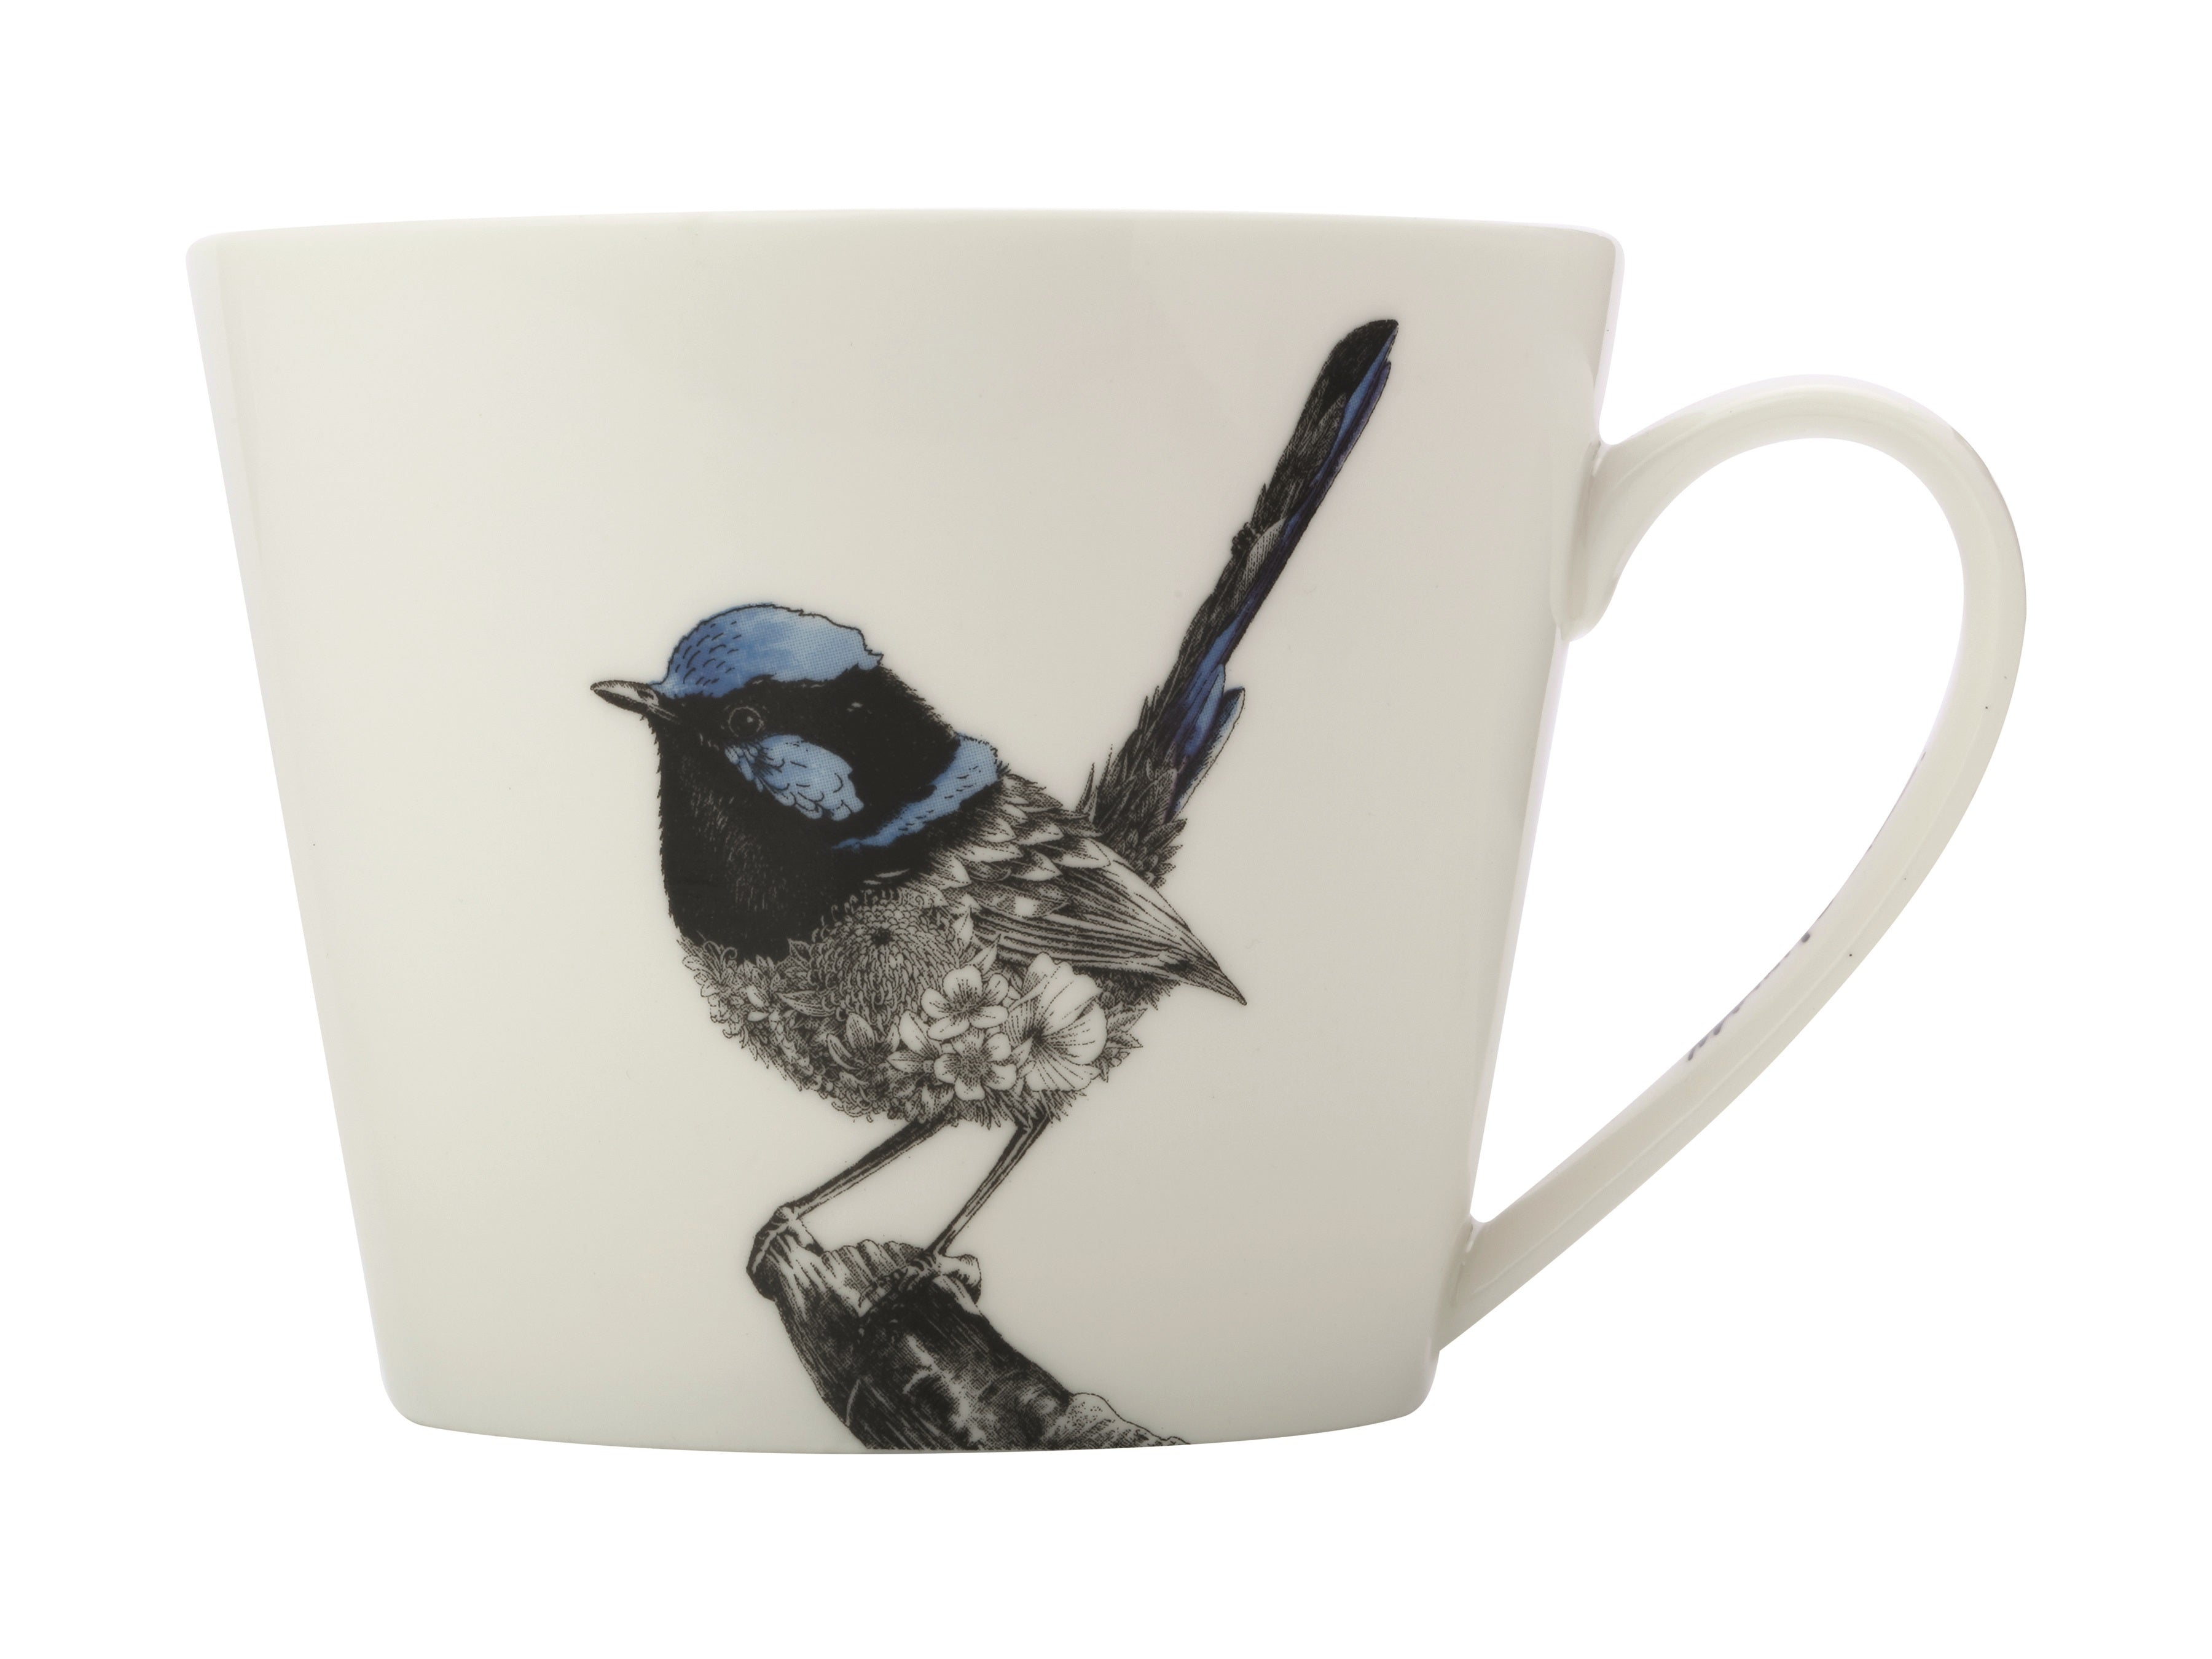 MW Marini Ferlazzo Birds Fairy-wren Mug, Bottle and Tea Towel Set